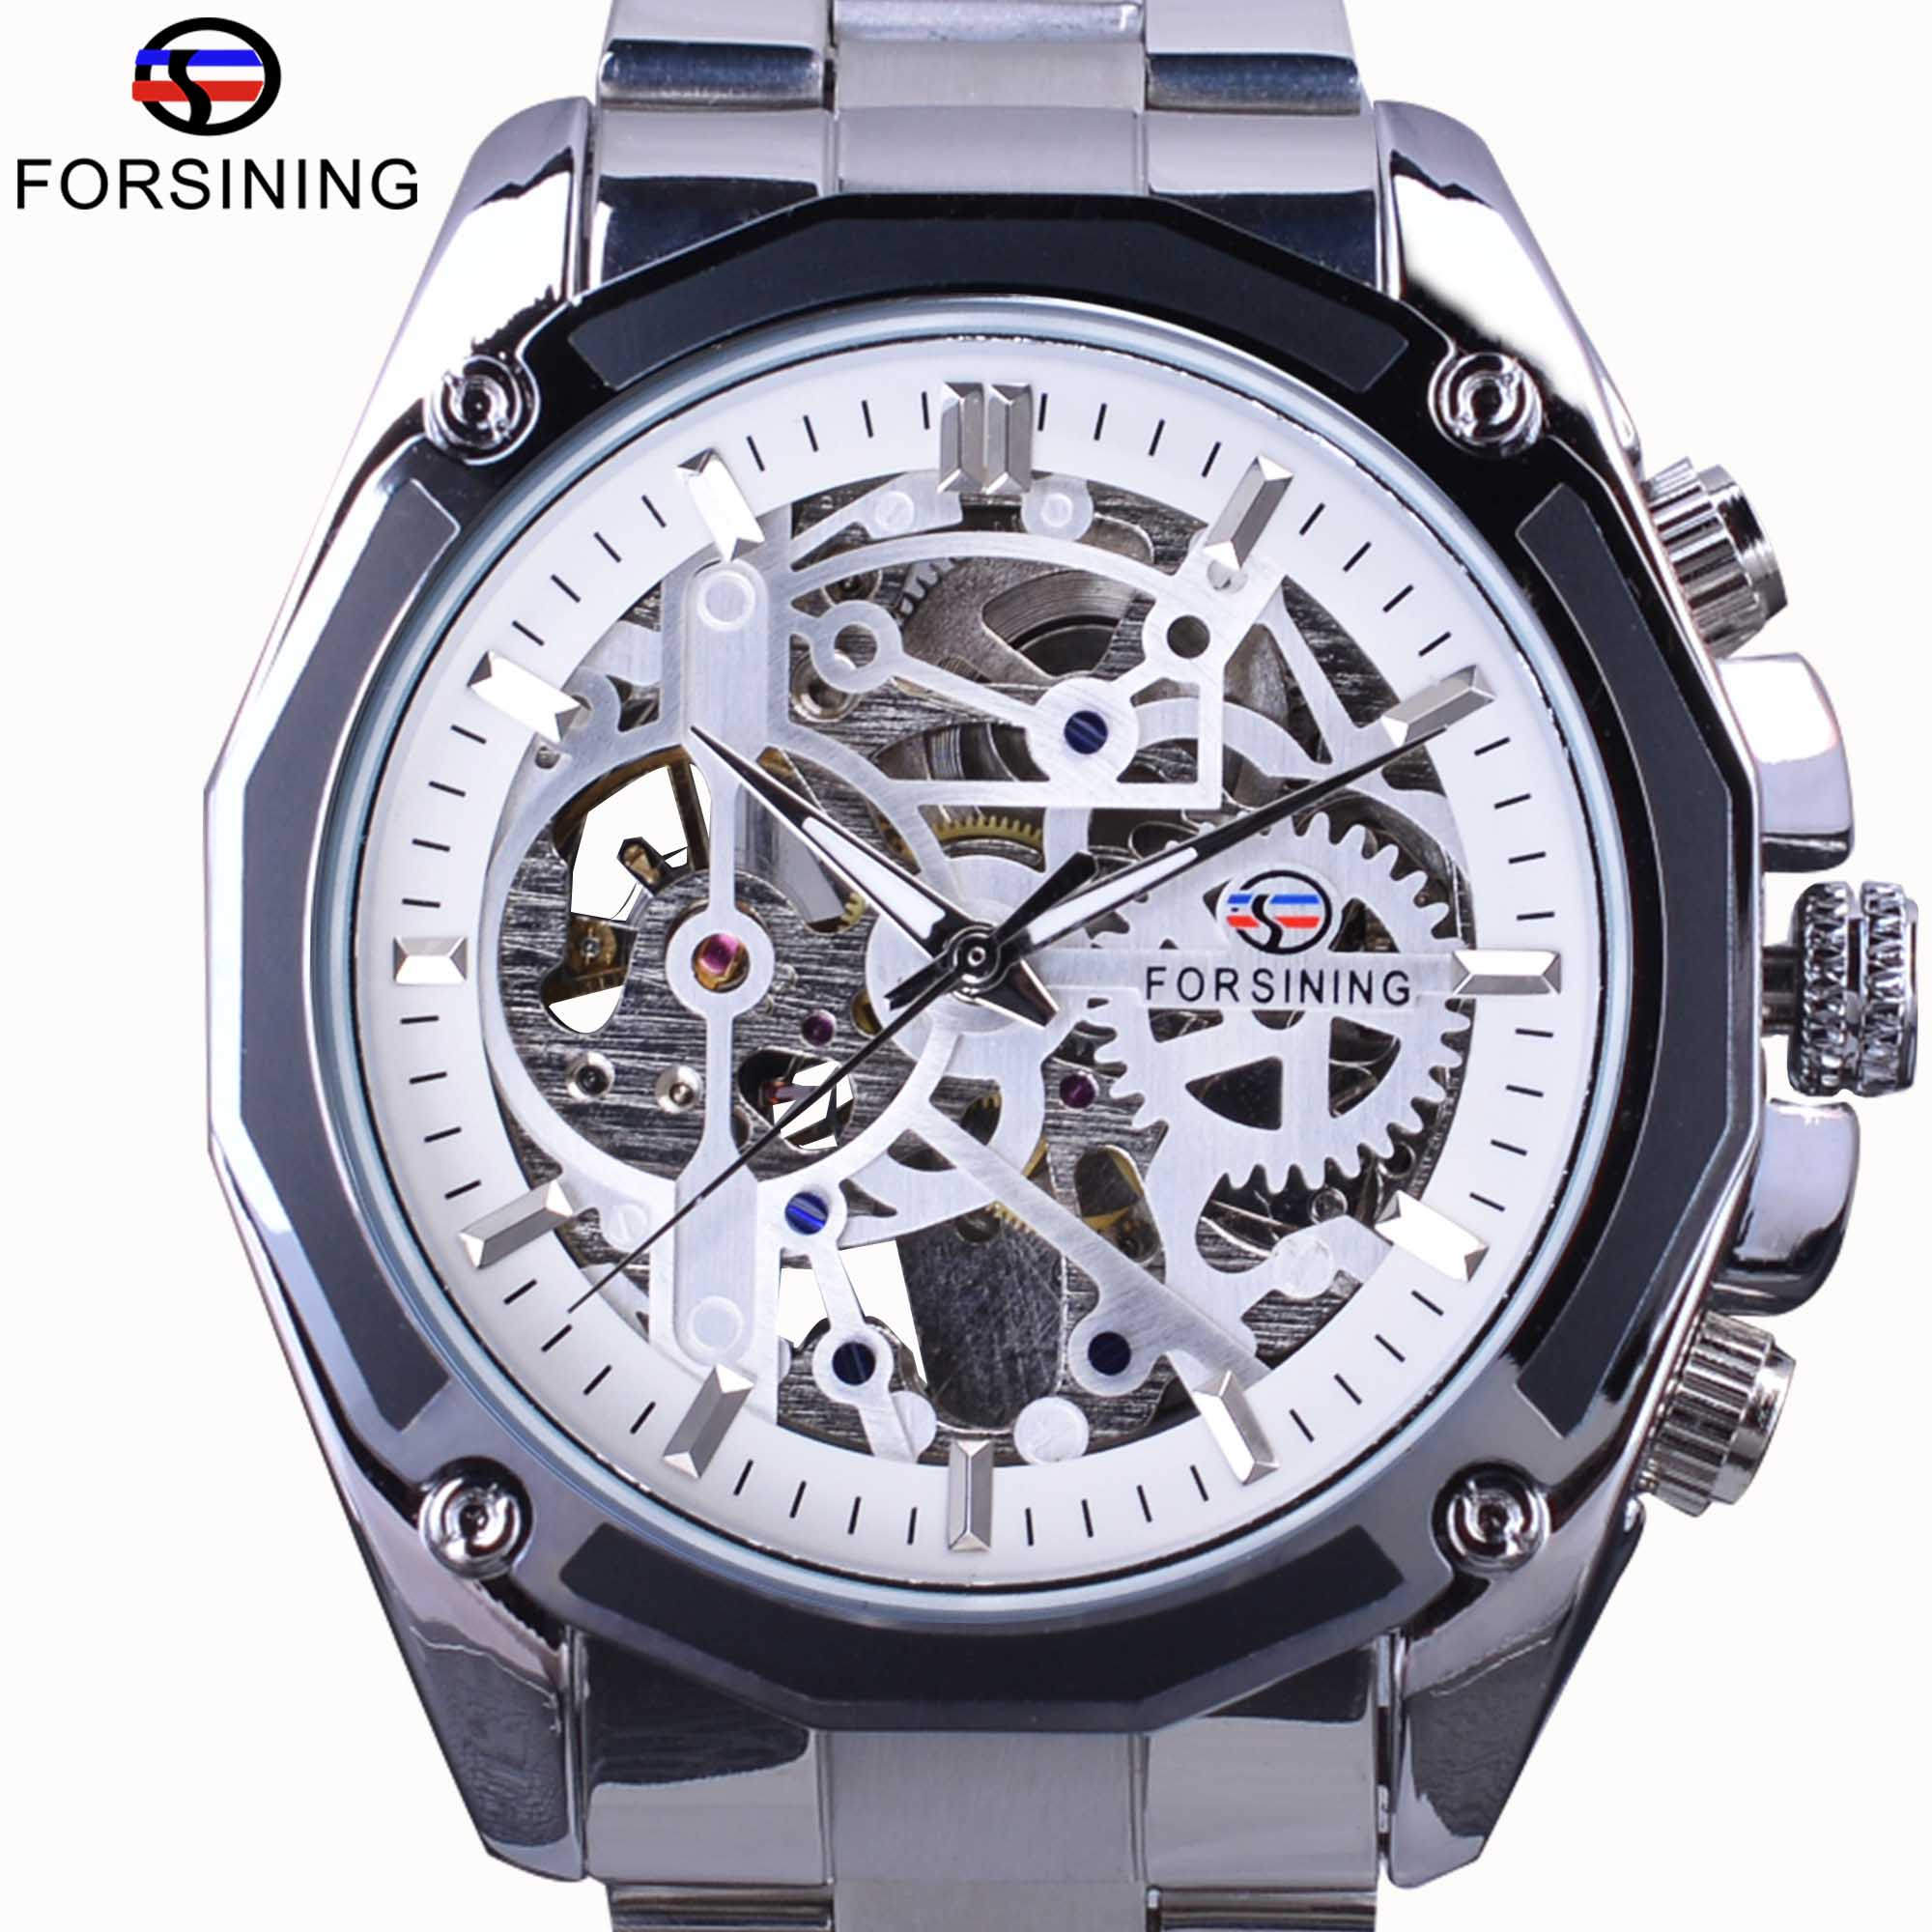 online watch pierce shop waterproof digital mens fashion silicone sportswatches sports brand brands watches w for sport sale led men military skmei